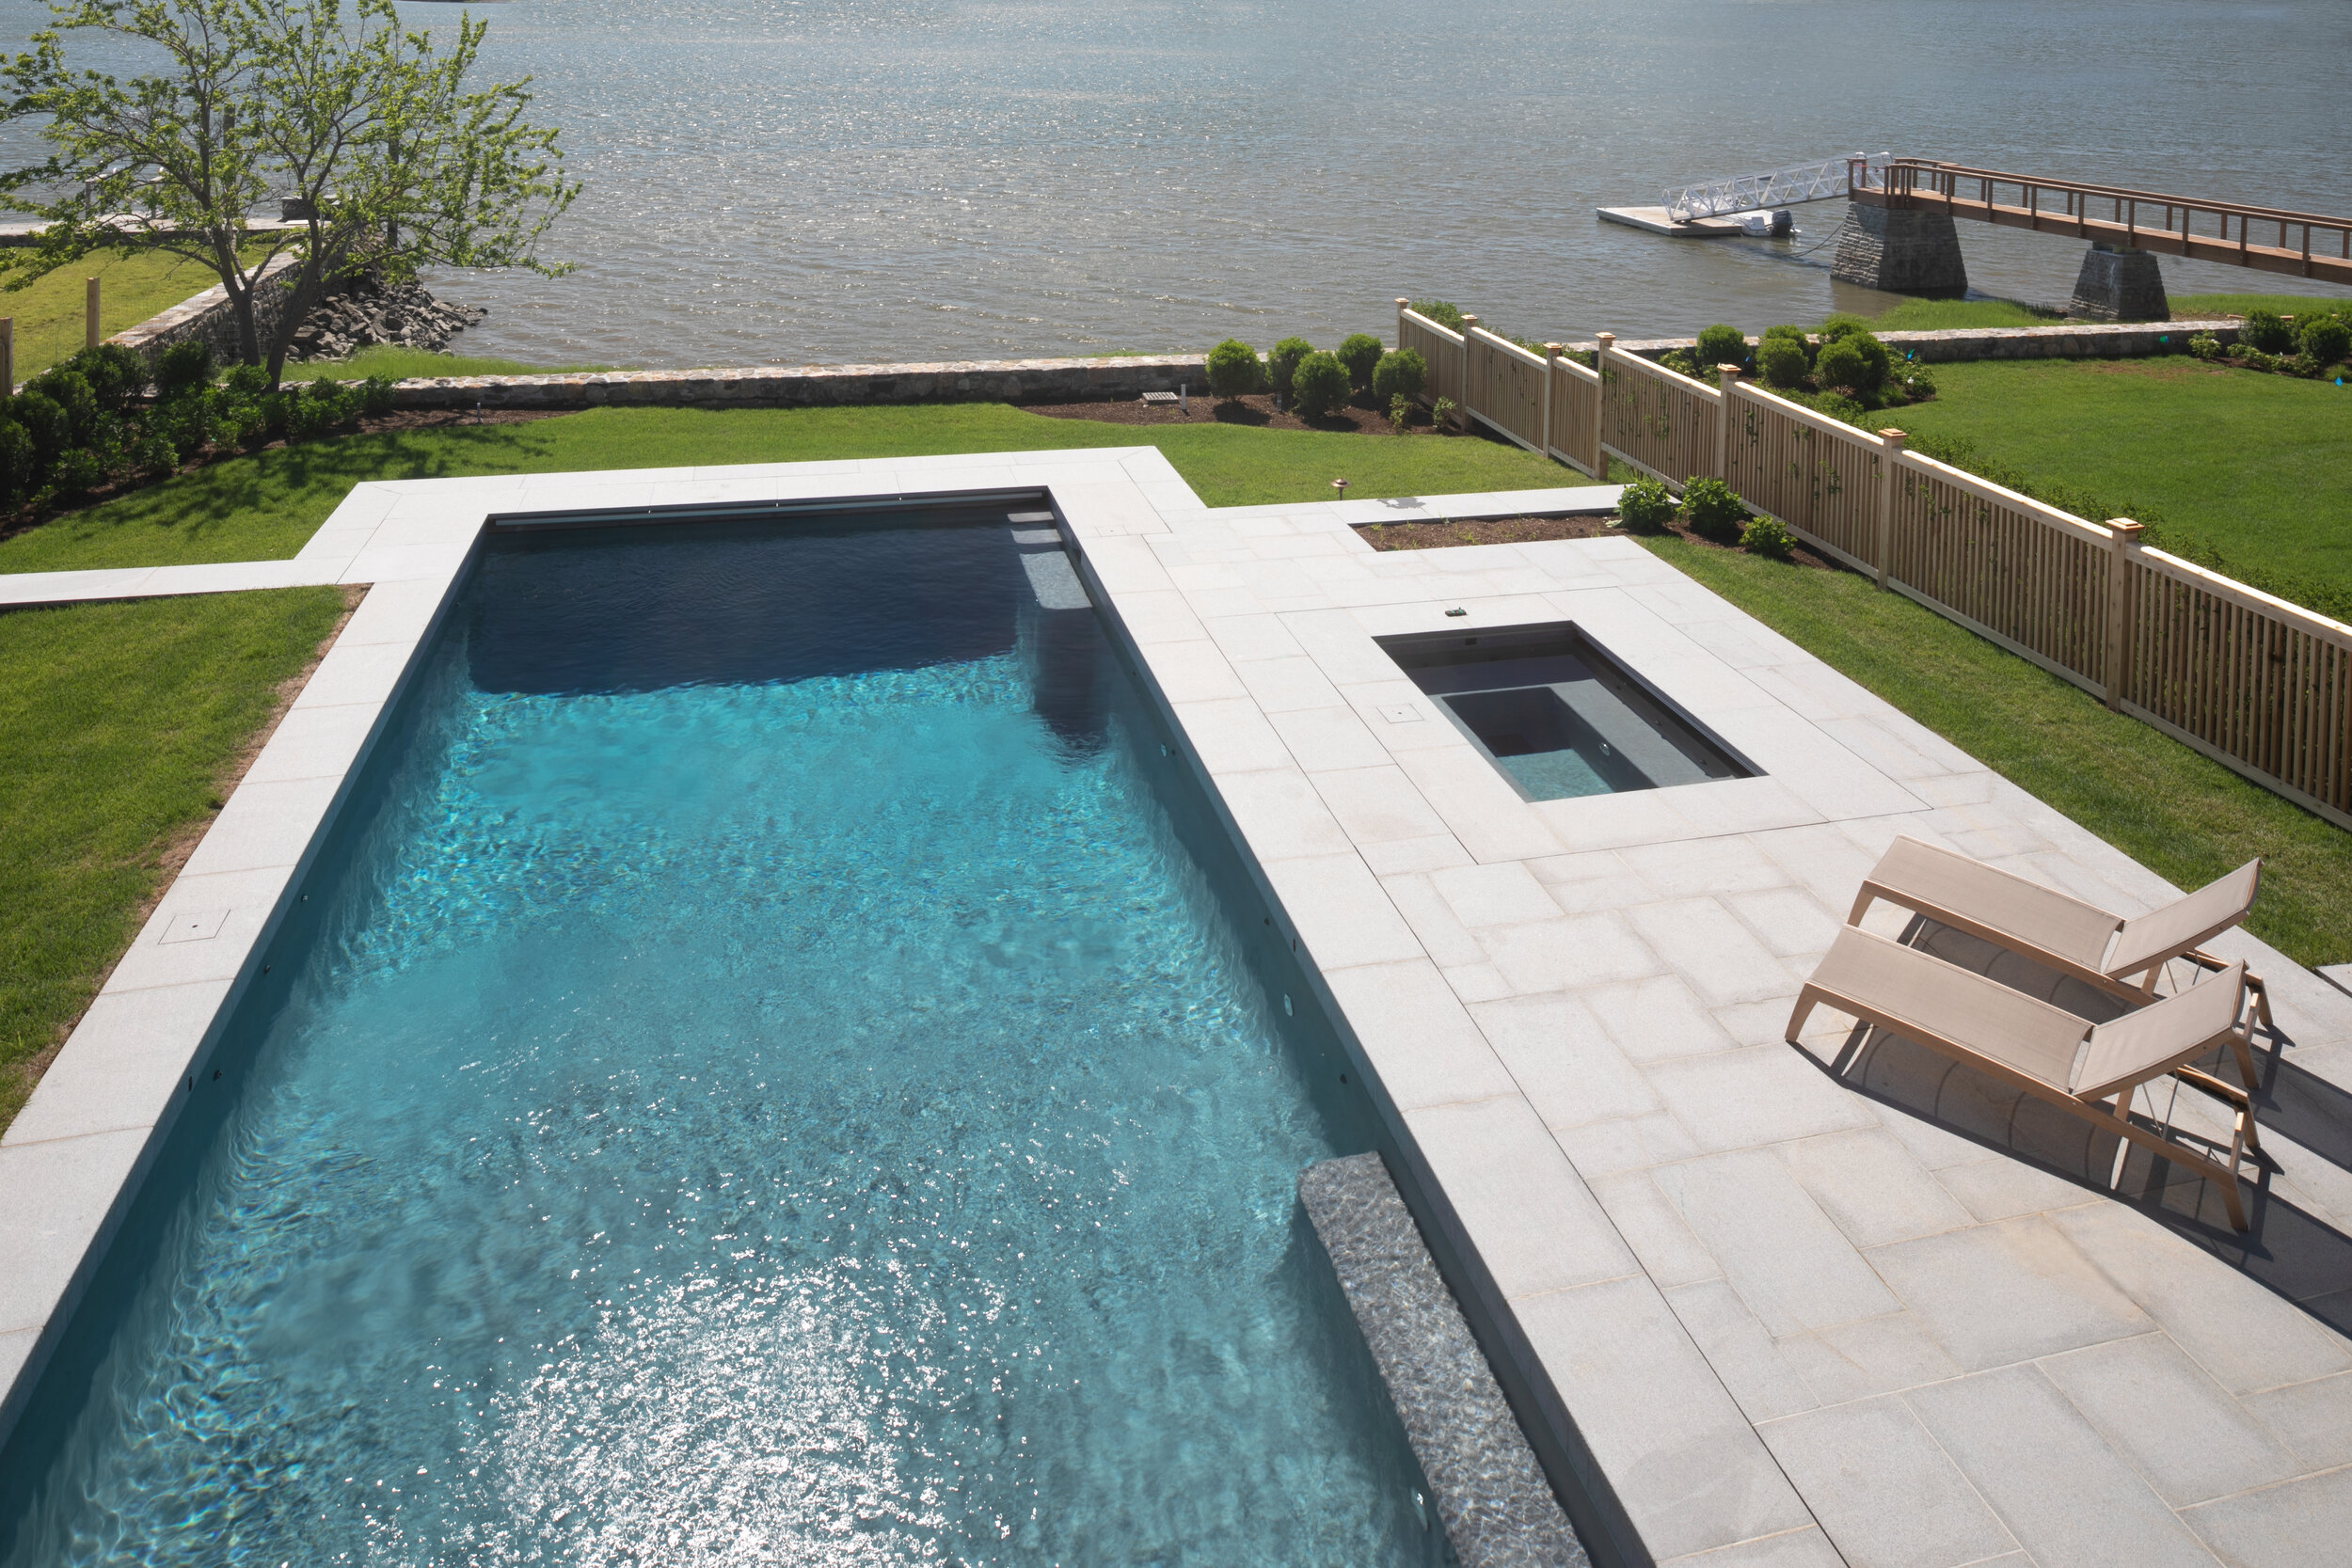 GS_Greenwich_Pool_127.jpg